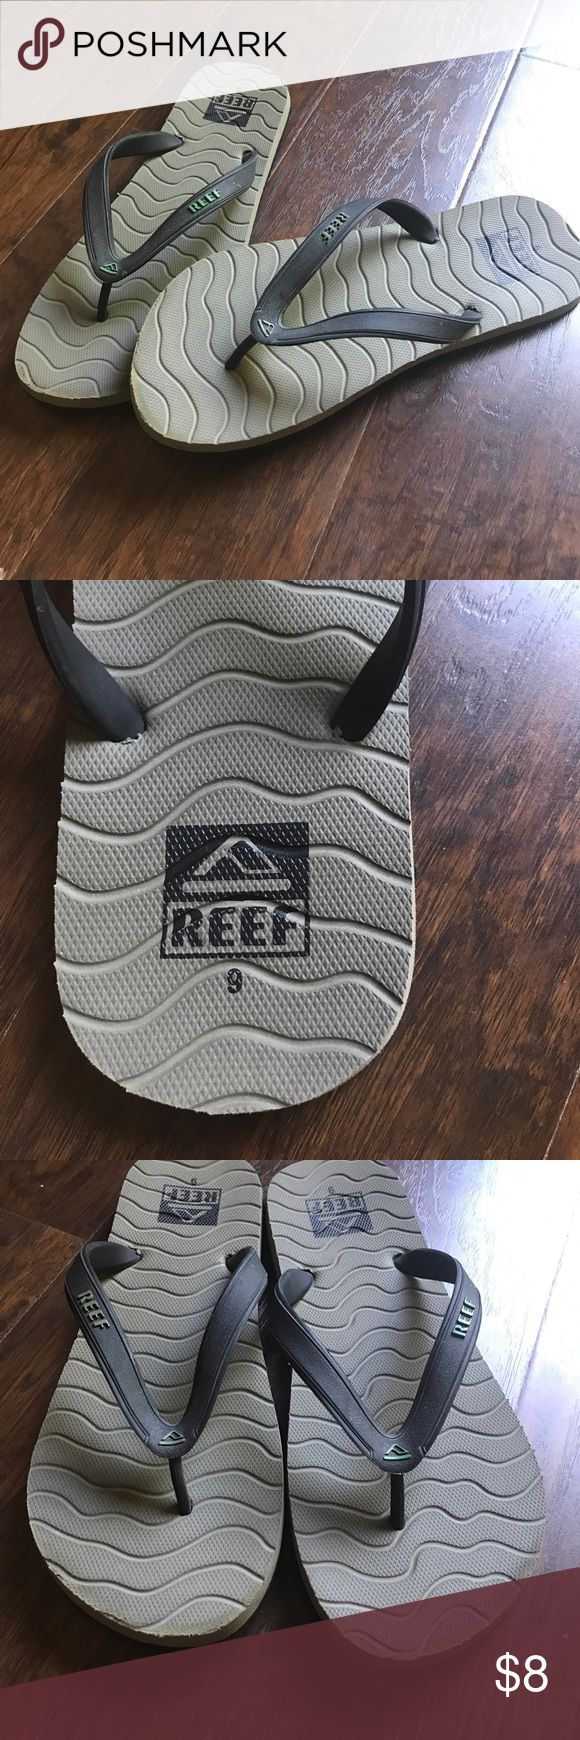 Men's Reef Flip Flops Men's Reef Flip Flops. In Great condition. Just a little worn at the toes as seen in photo 3. Still a lot of life left for this pair of comfortable Flip Flops! Reef Shoes Sandals & Flip-Flops